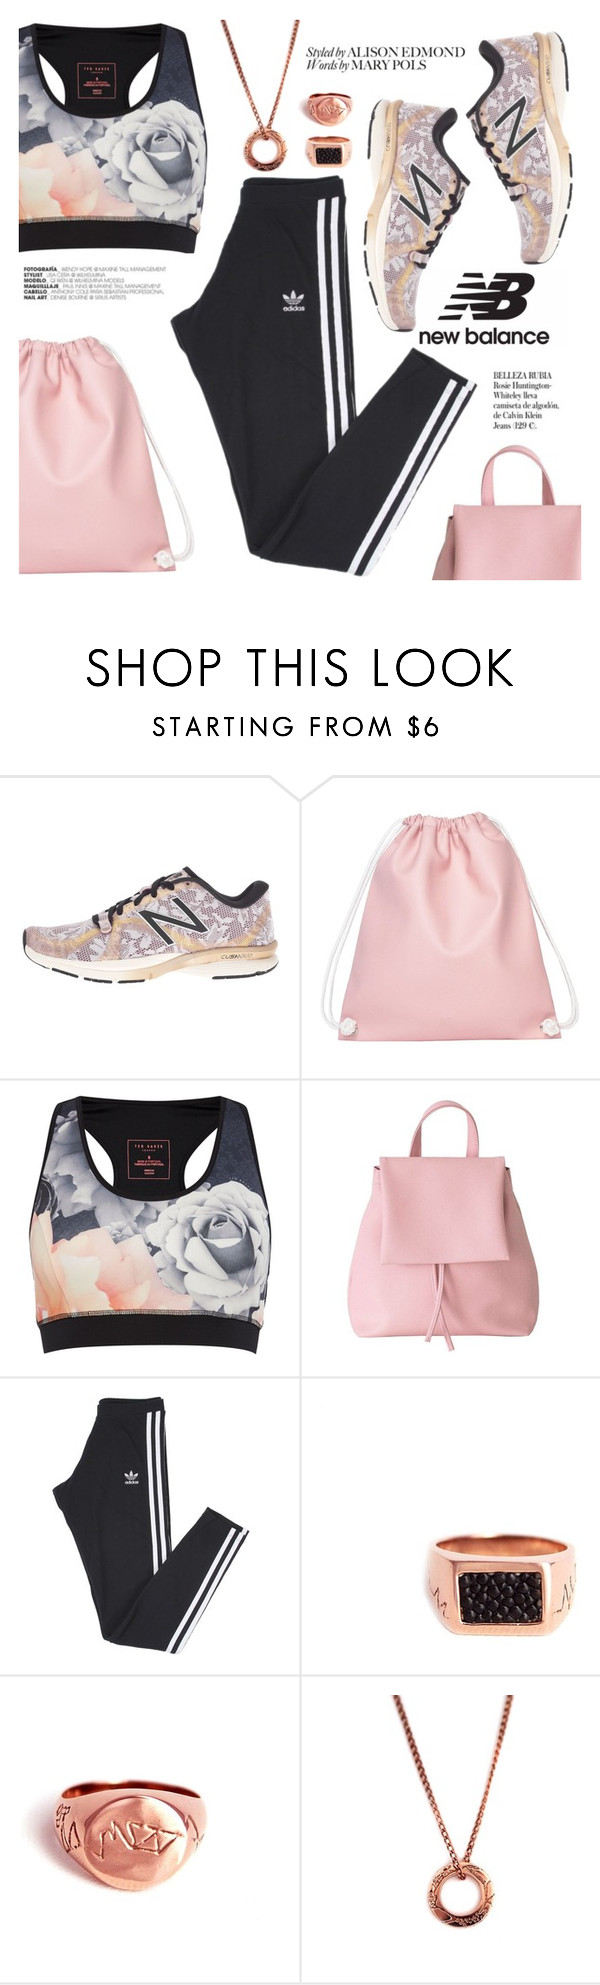 """""""Run the World in New Balance"""" by thepommier ❤ liked on Polyvore featuring New Balance, Ted Baker, adidas, Whiteley and NewBalance"""